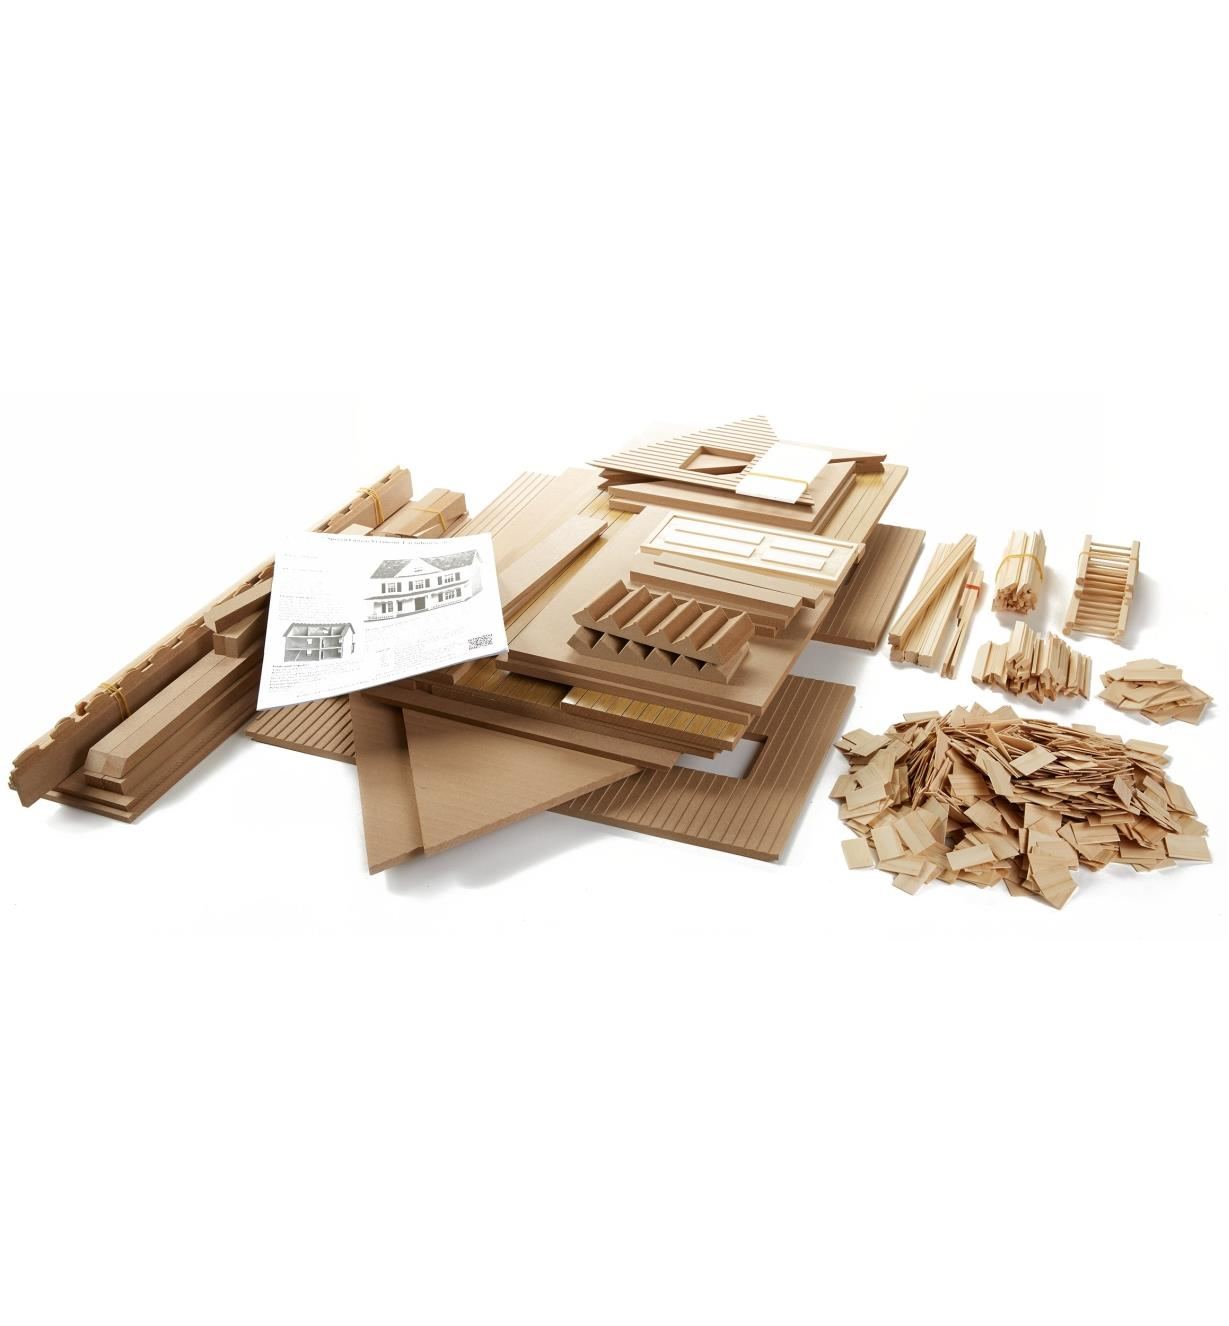 Components of the dollhouse kit before assembly